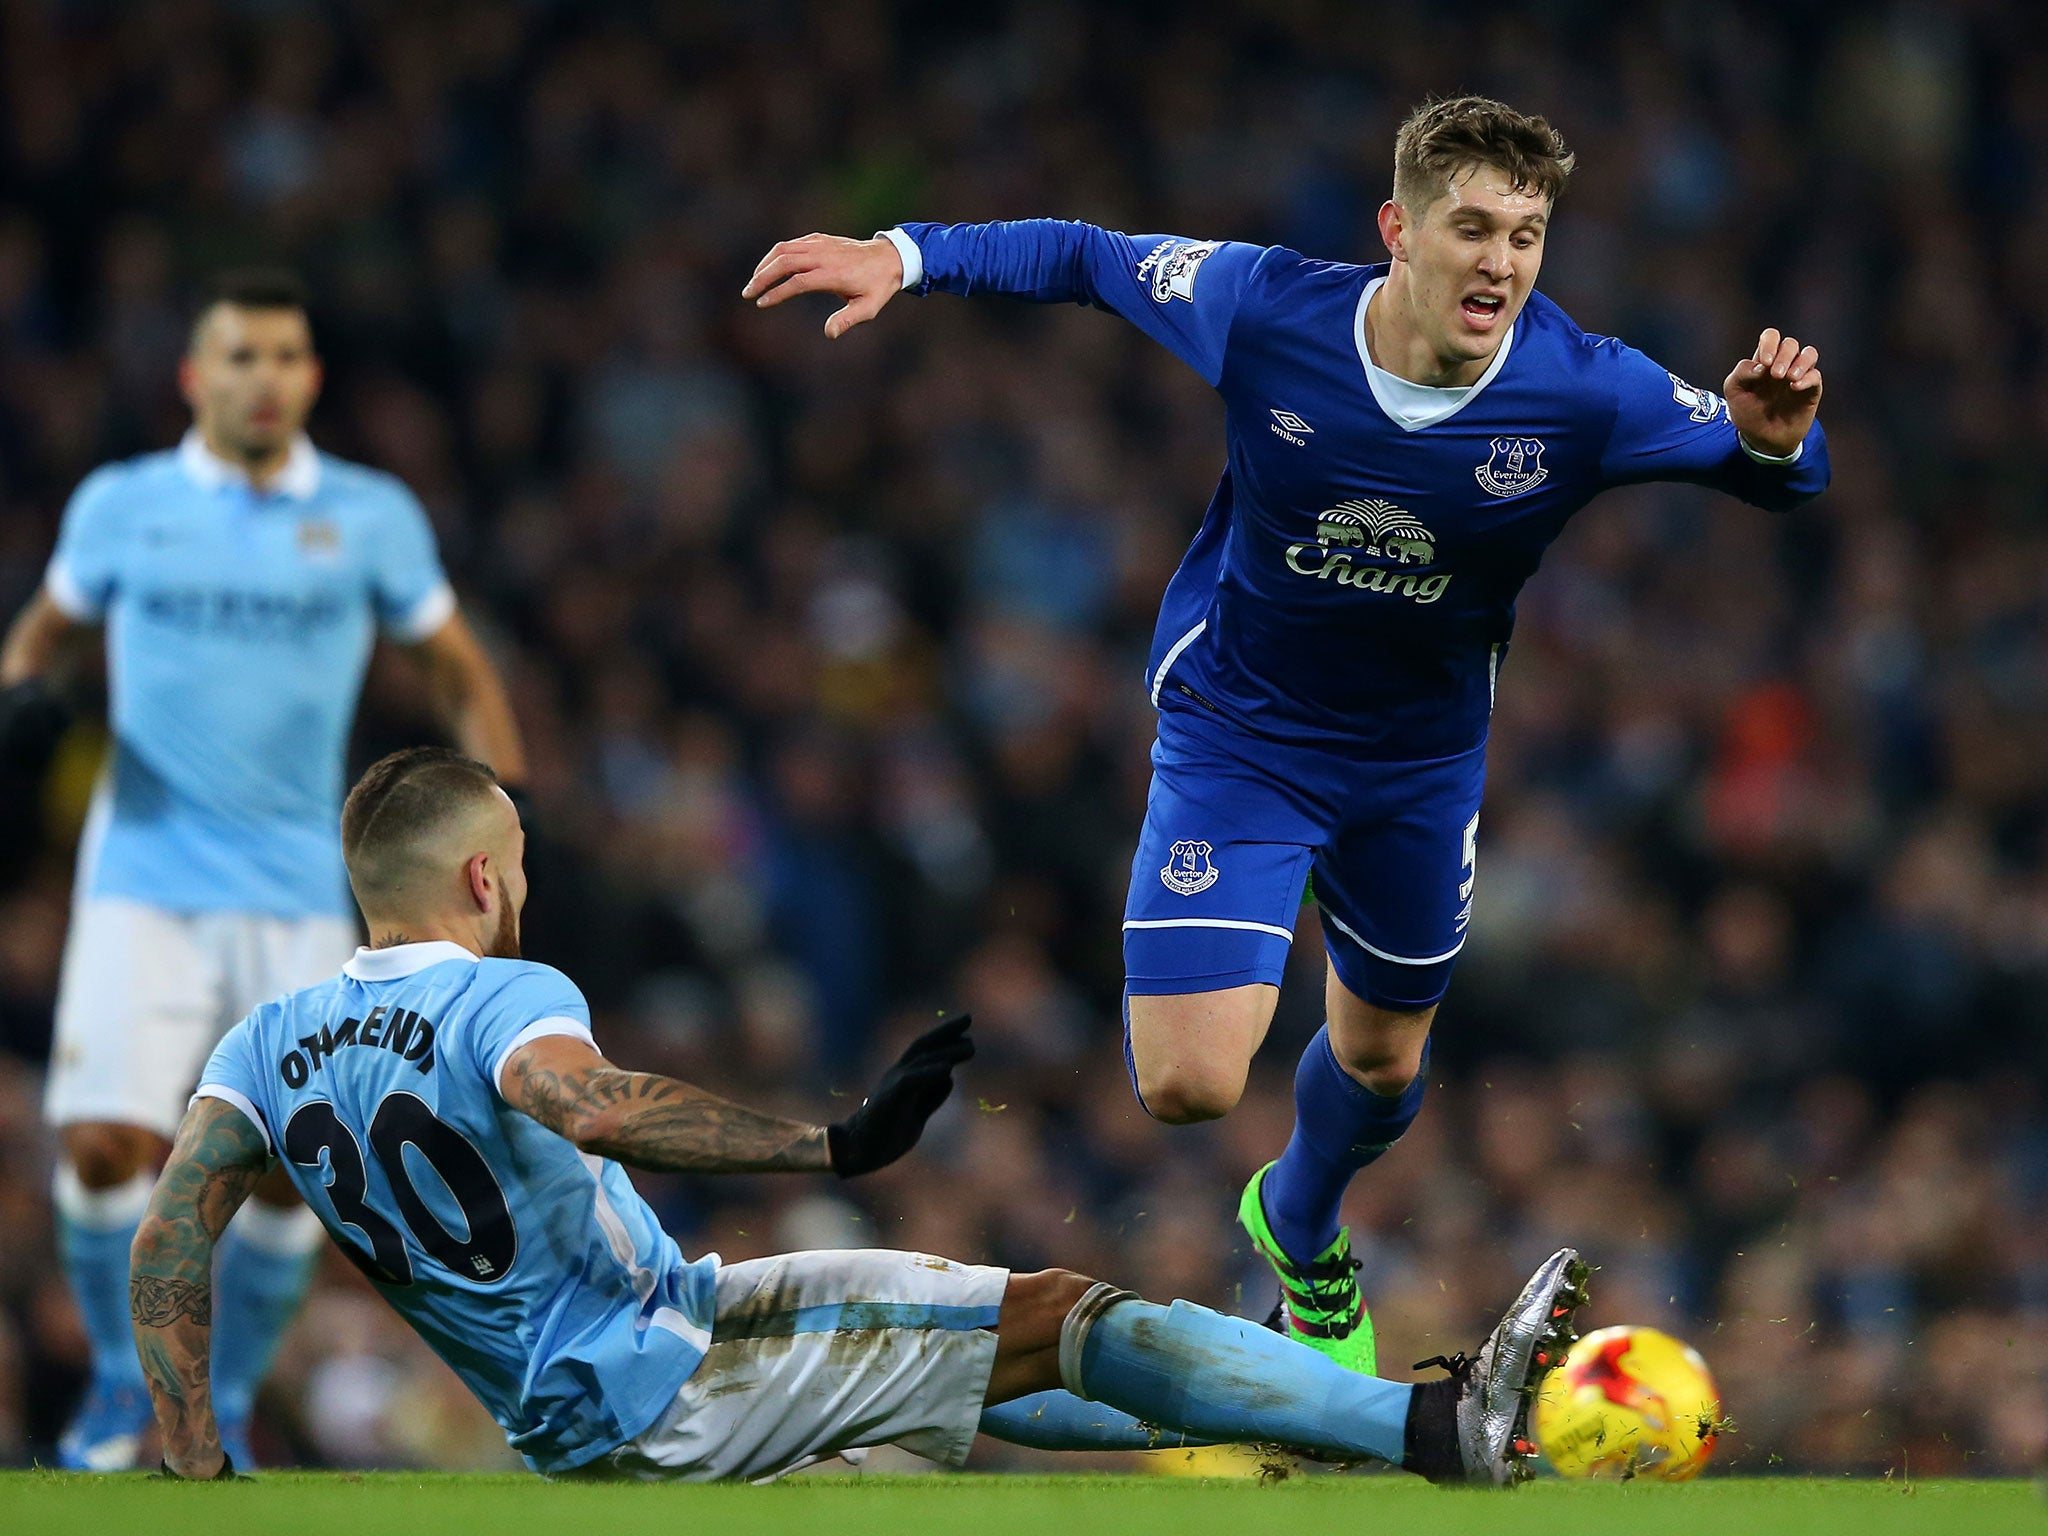 Pep Guardiola wants John Stones and Aymeric Laporte at